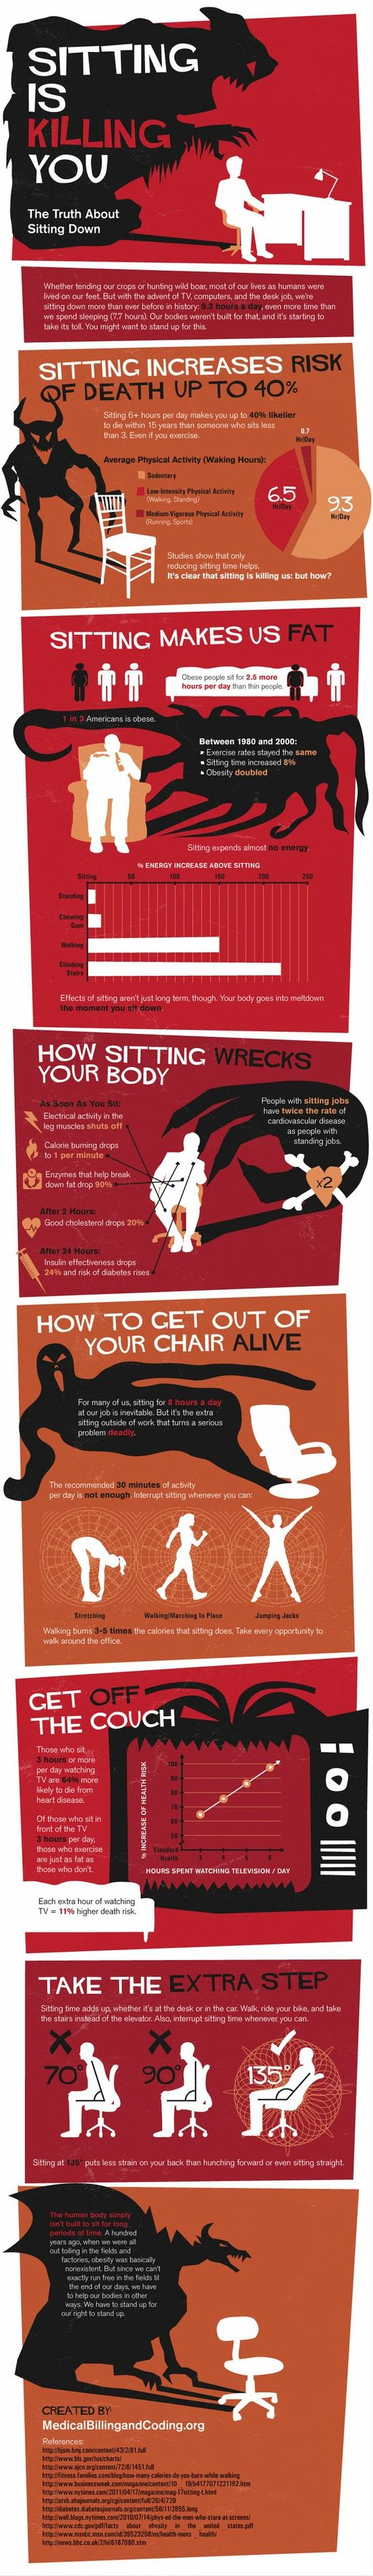 Why sitting is killing us.  This is scary.